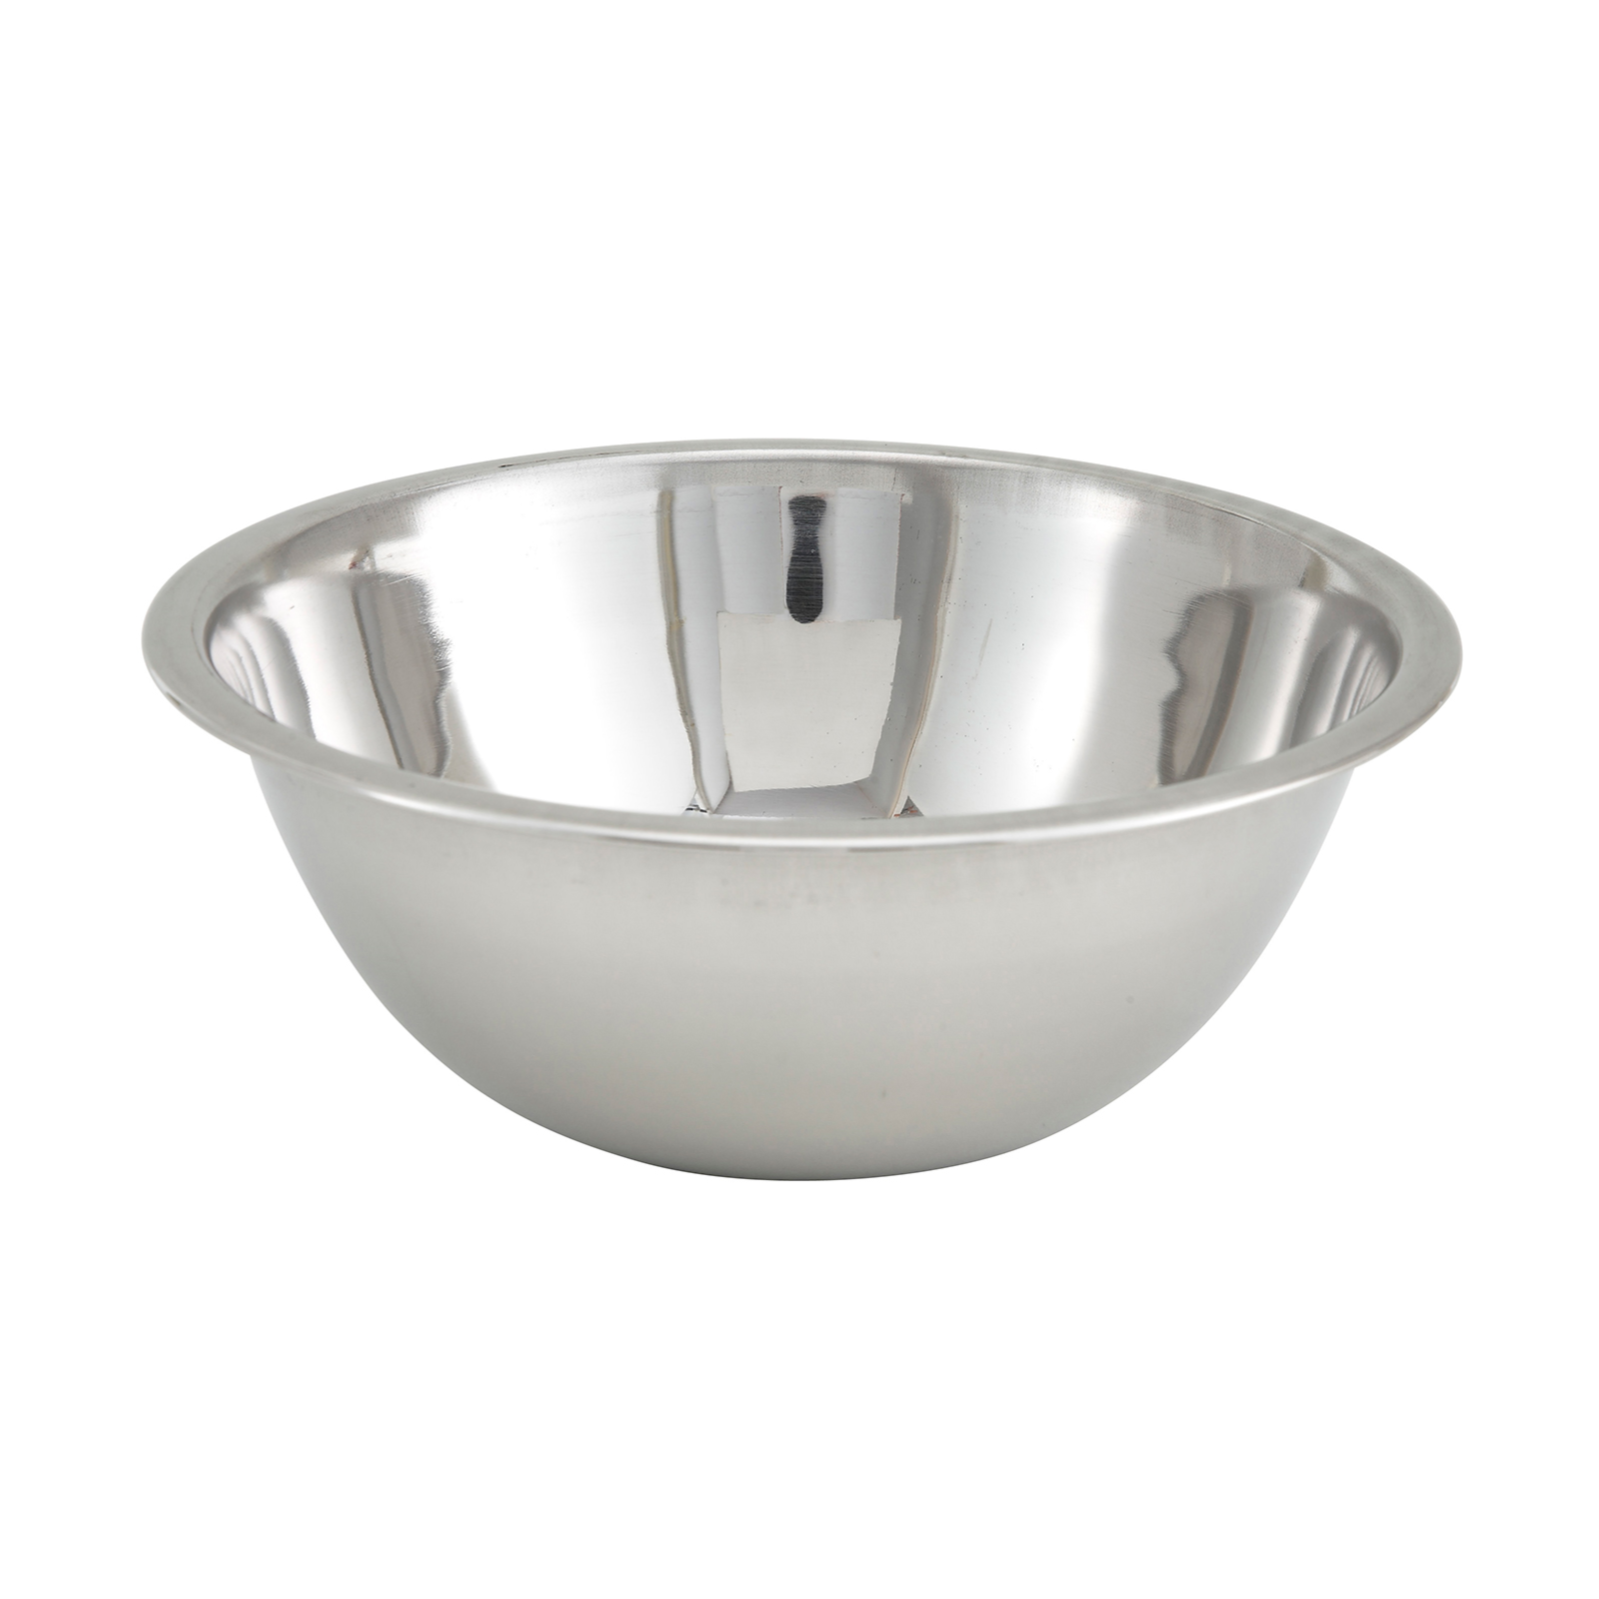 1650-102 Winco Mixing bowl, metal 3qt.